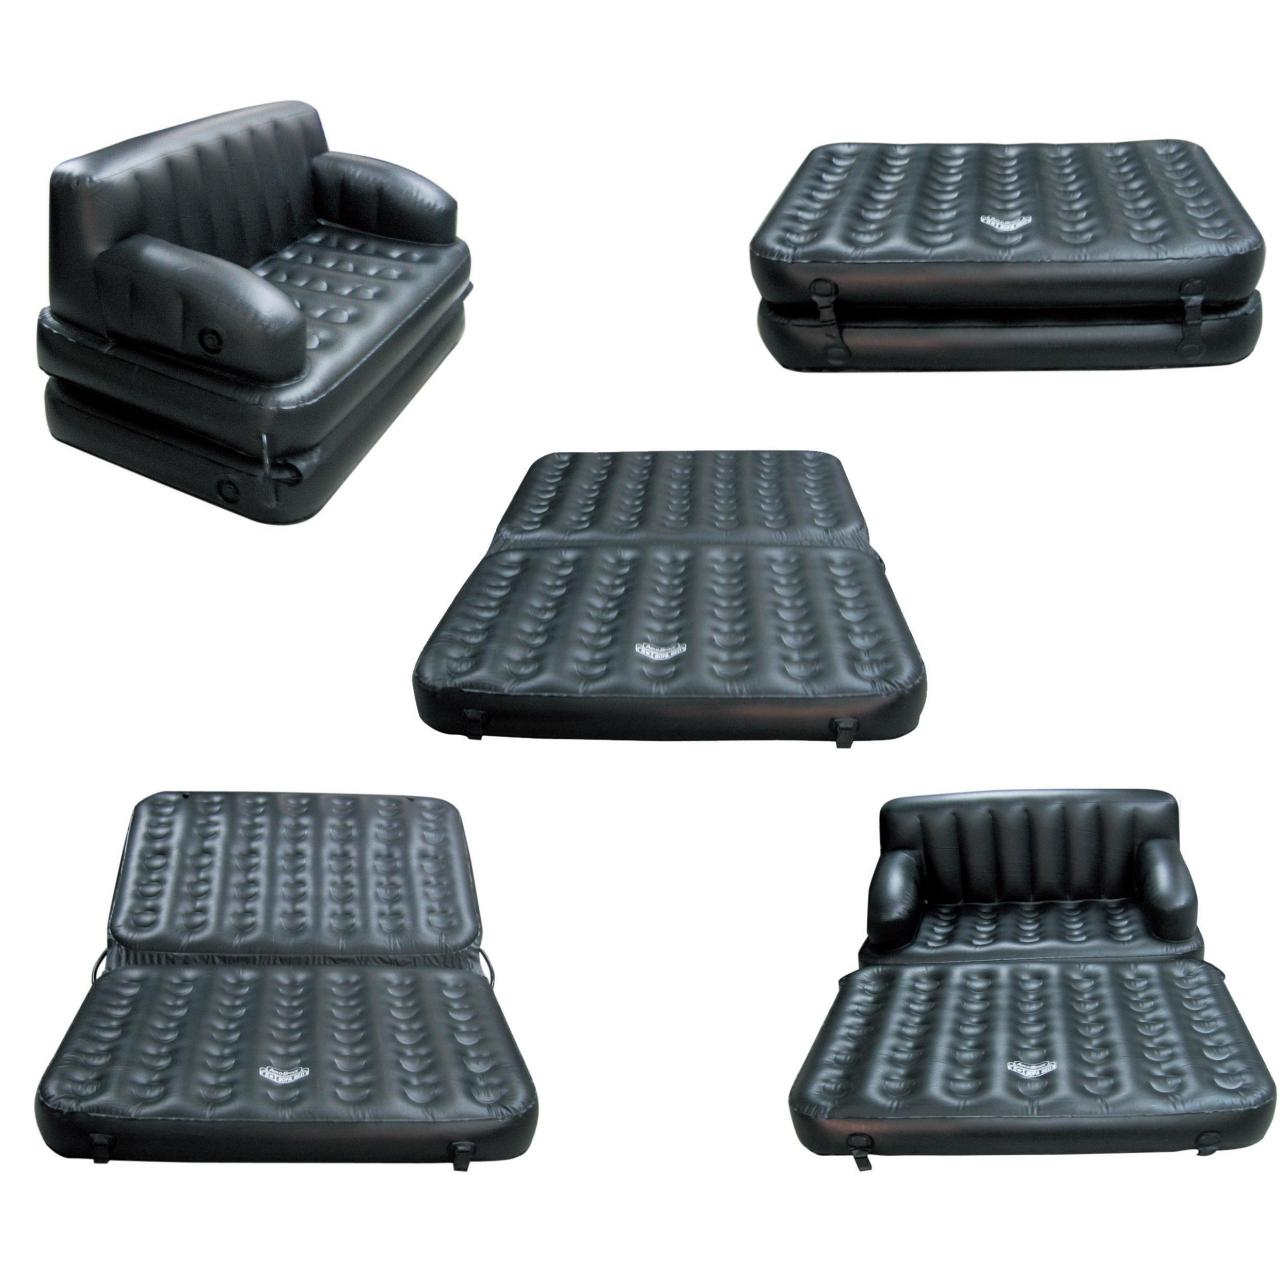 China 5 in 1 sofabed Queen size wholesale